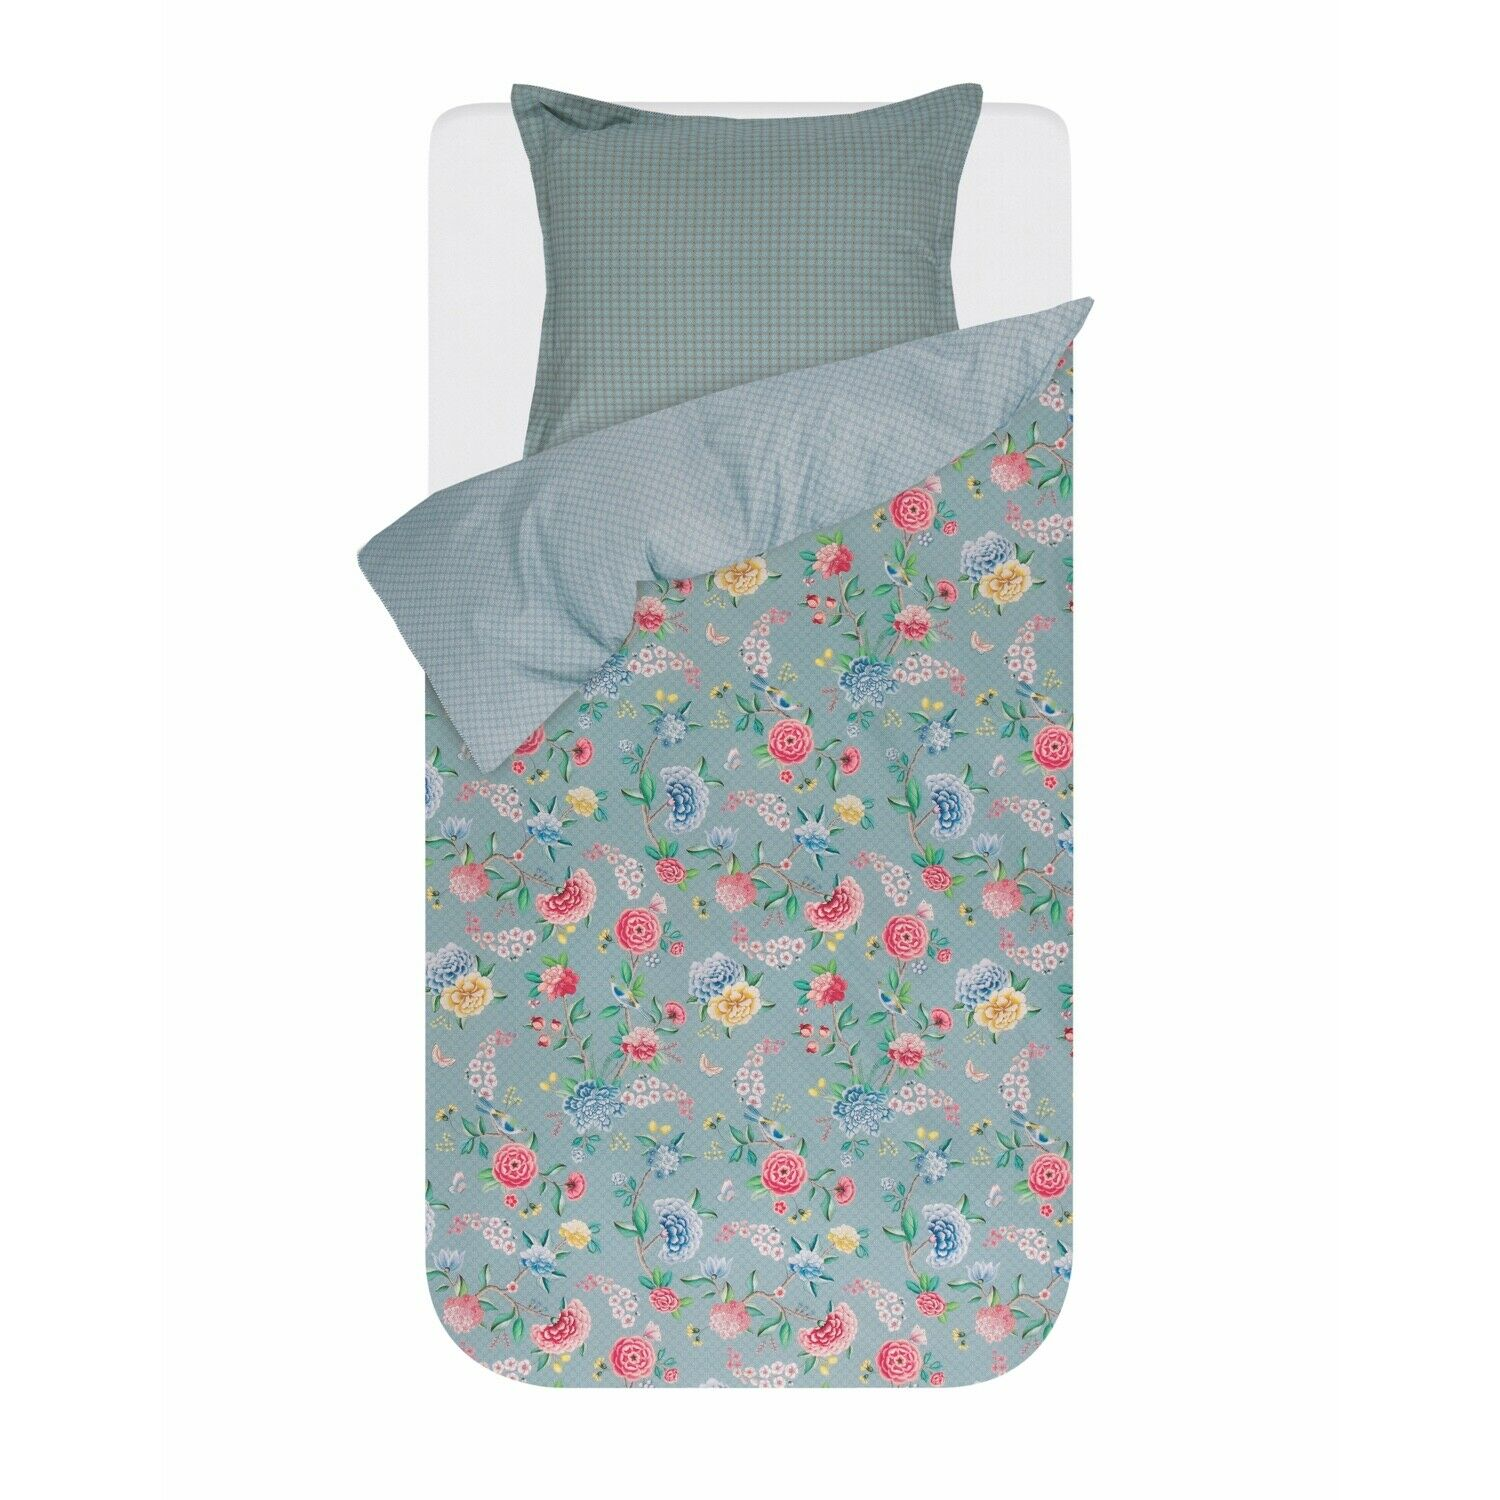 Pip Studio linge de lit Good Night Bleu Fleurs Pétales A Motifs Bordure percale